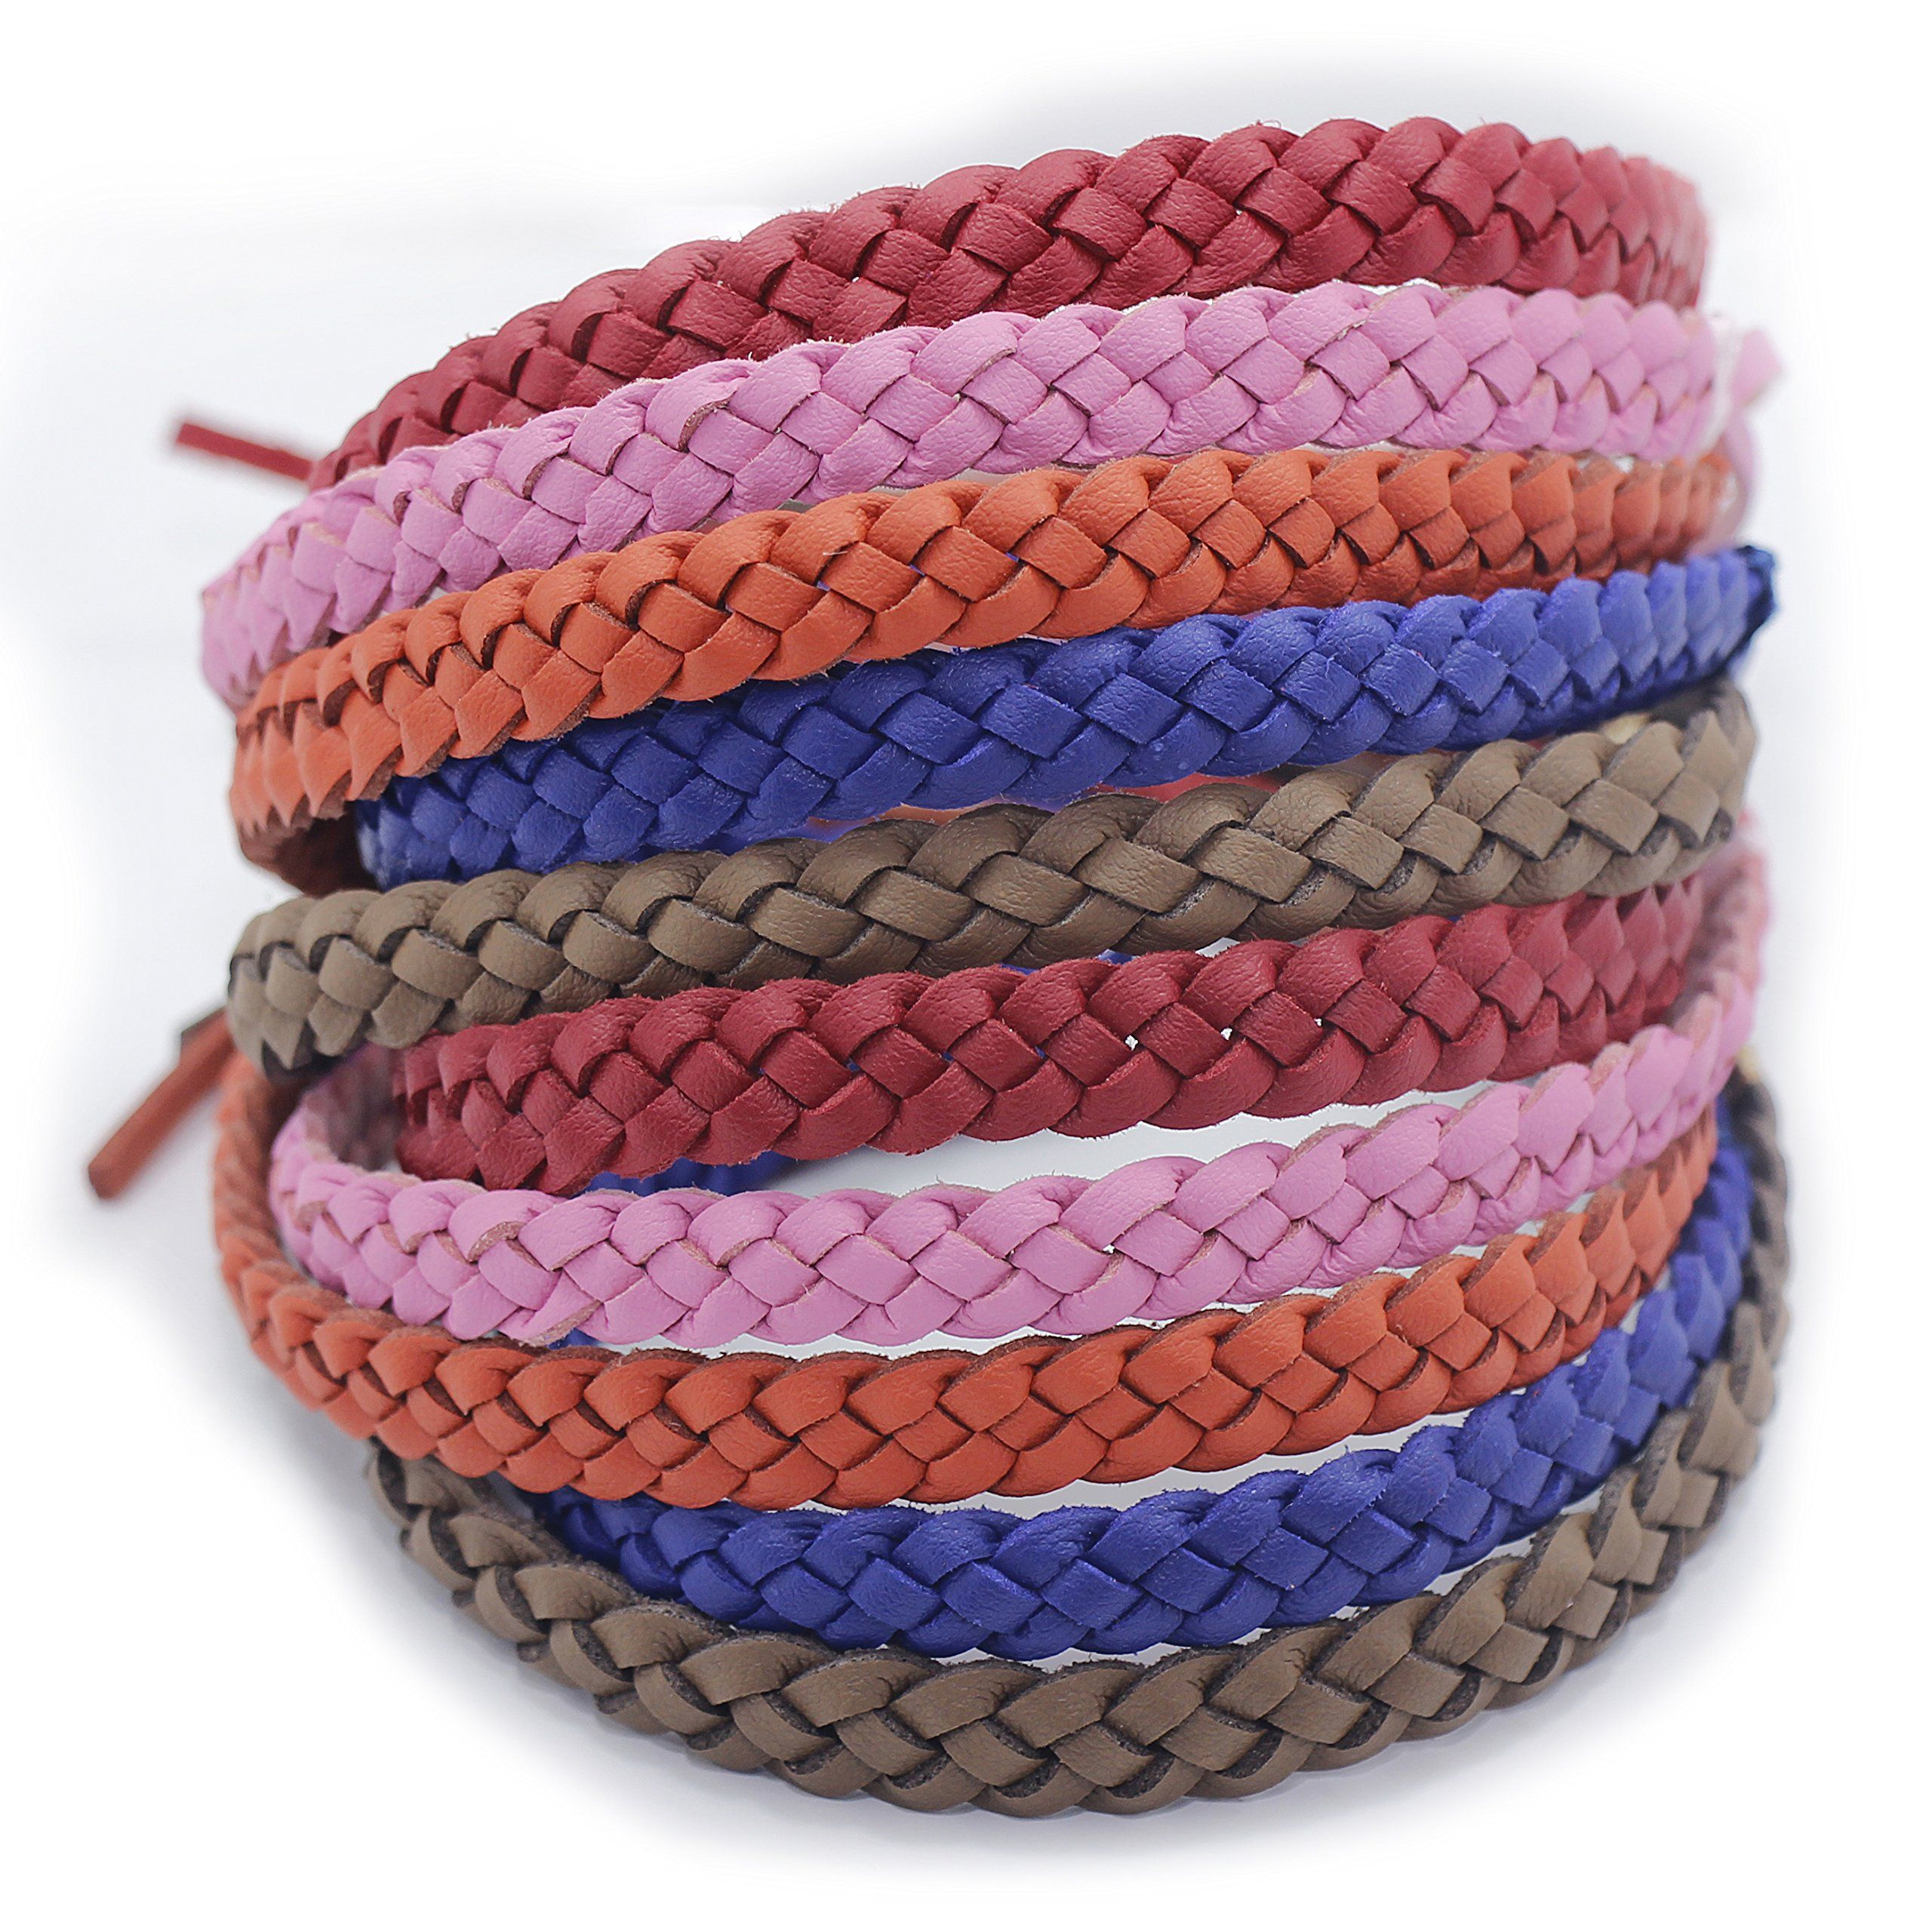 OUTXPRO 10 Mosquito Bug Insect Repellent Leather Bracelets